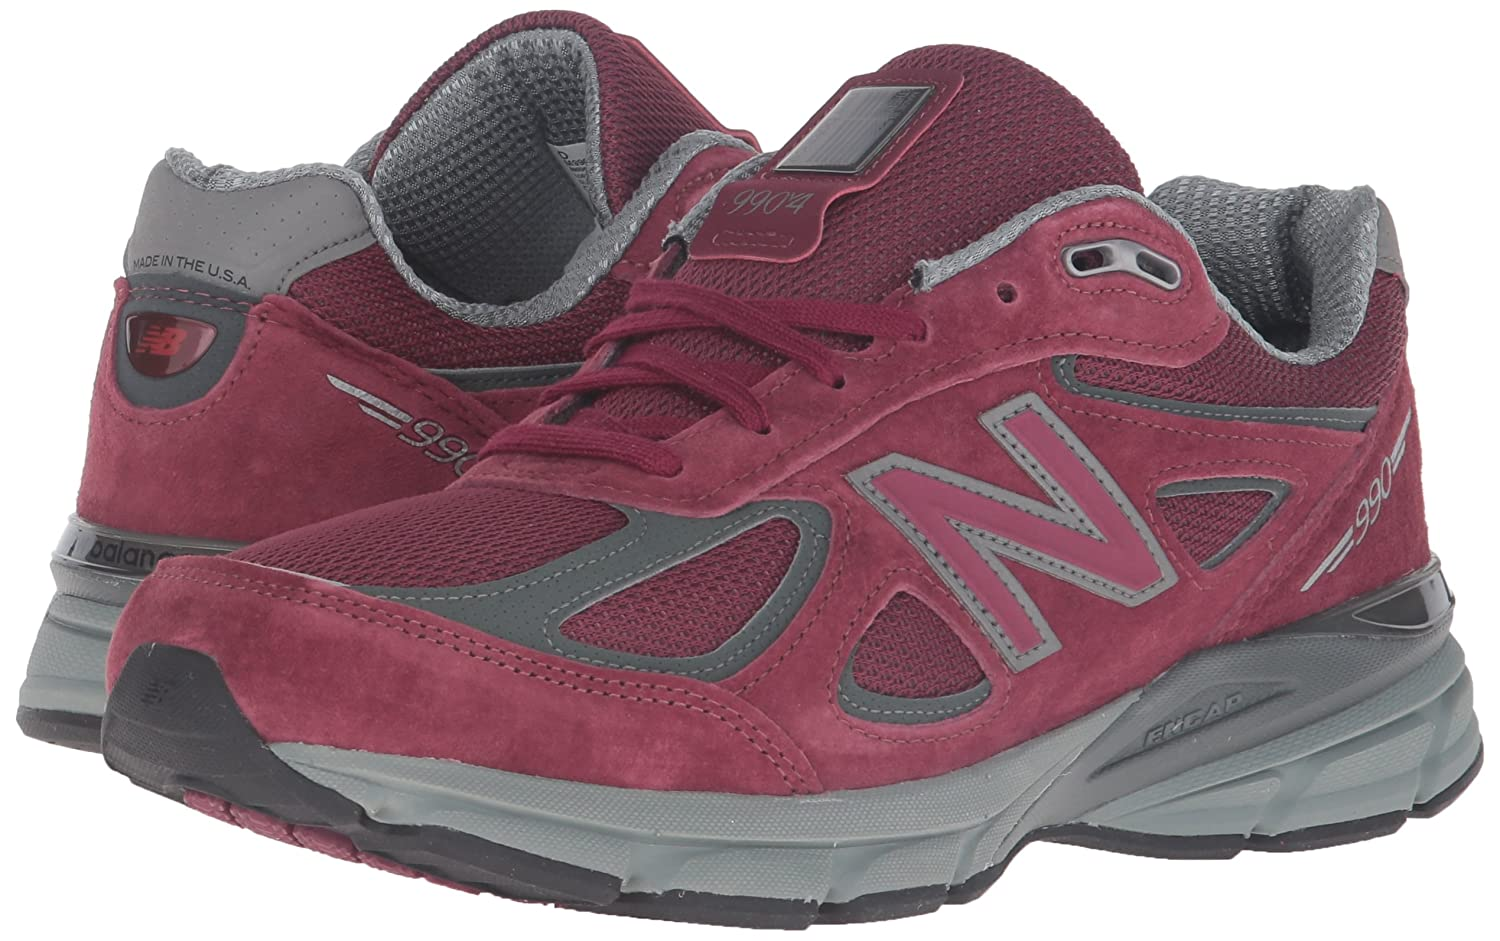 New-Balance-990-990v4-Classicc-Retro-Fashion-Sneaker-Made-in-USA thumbnail 45